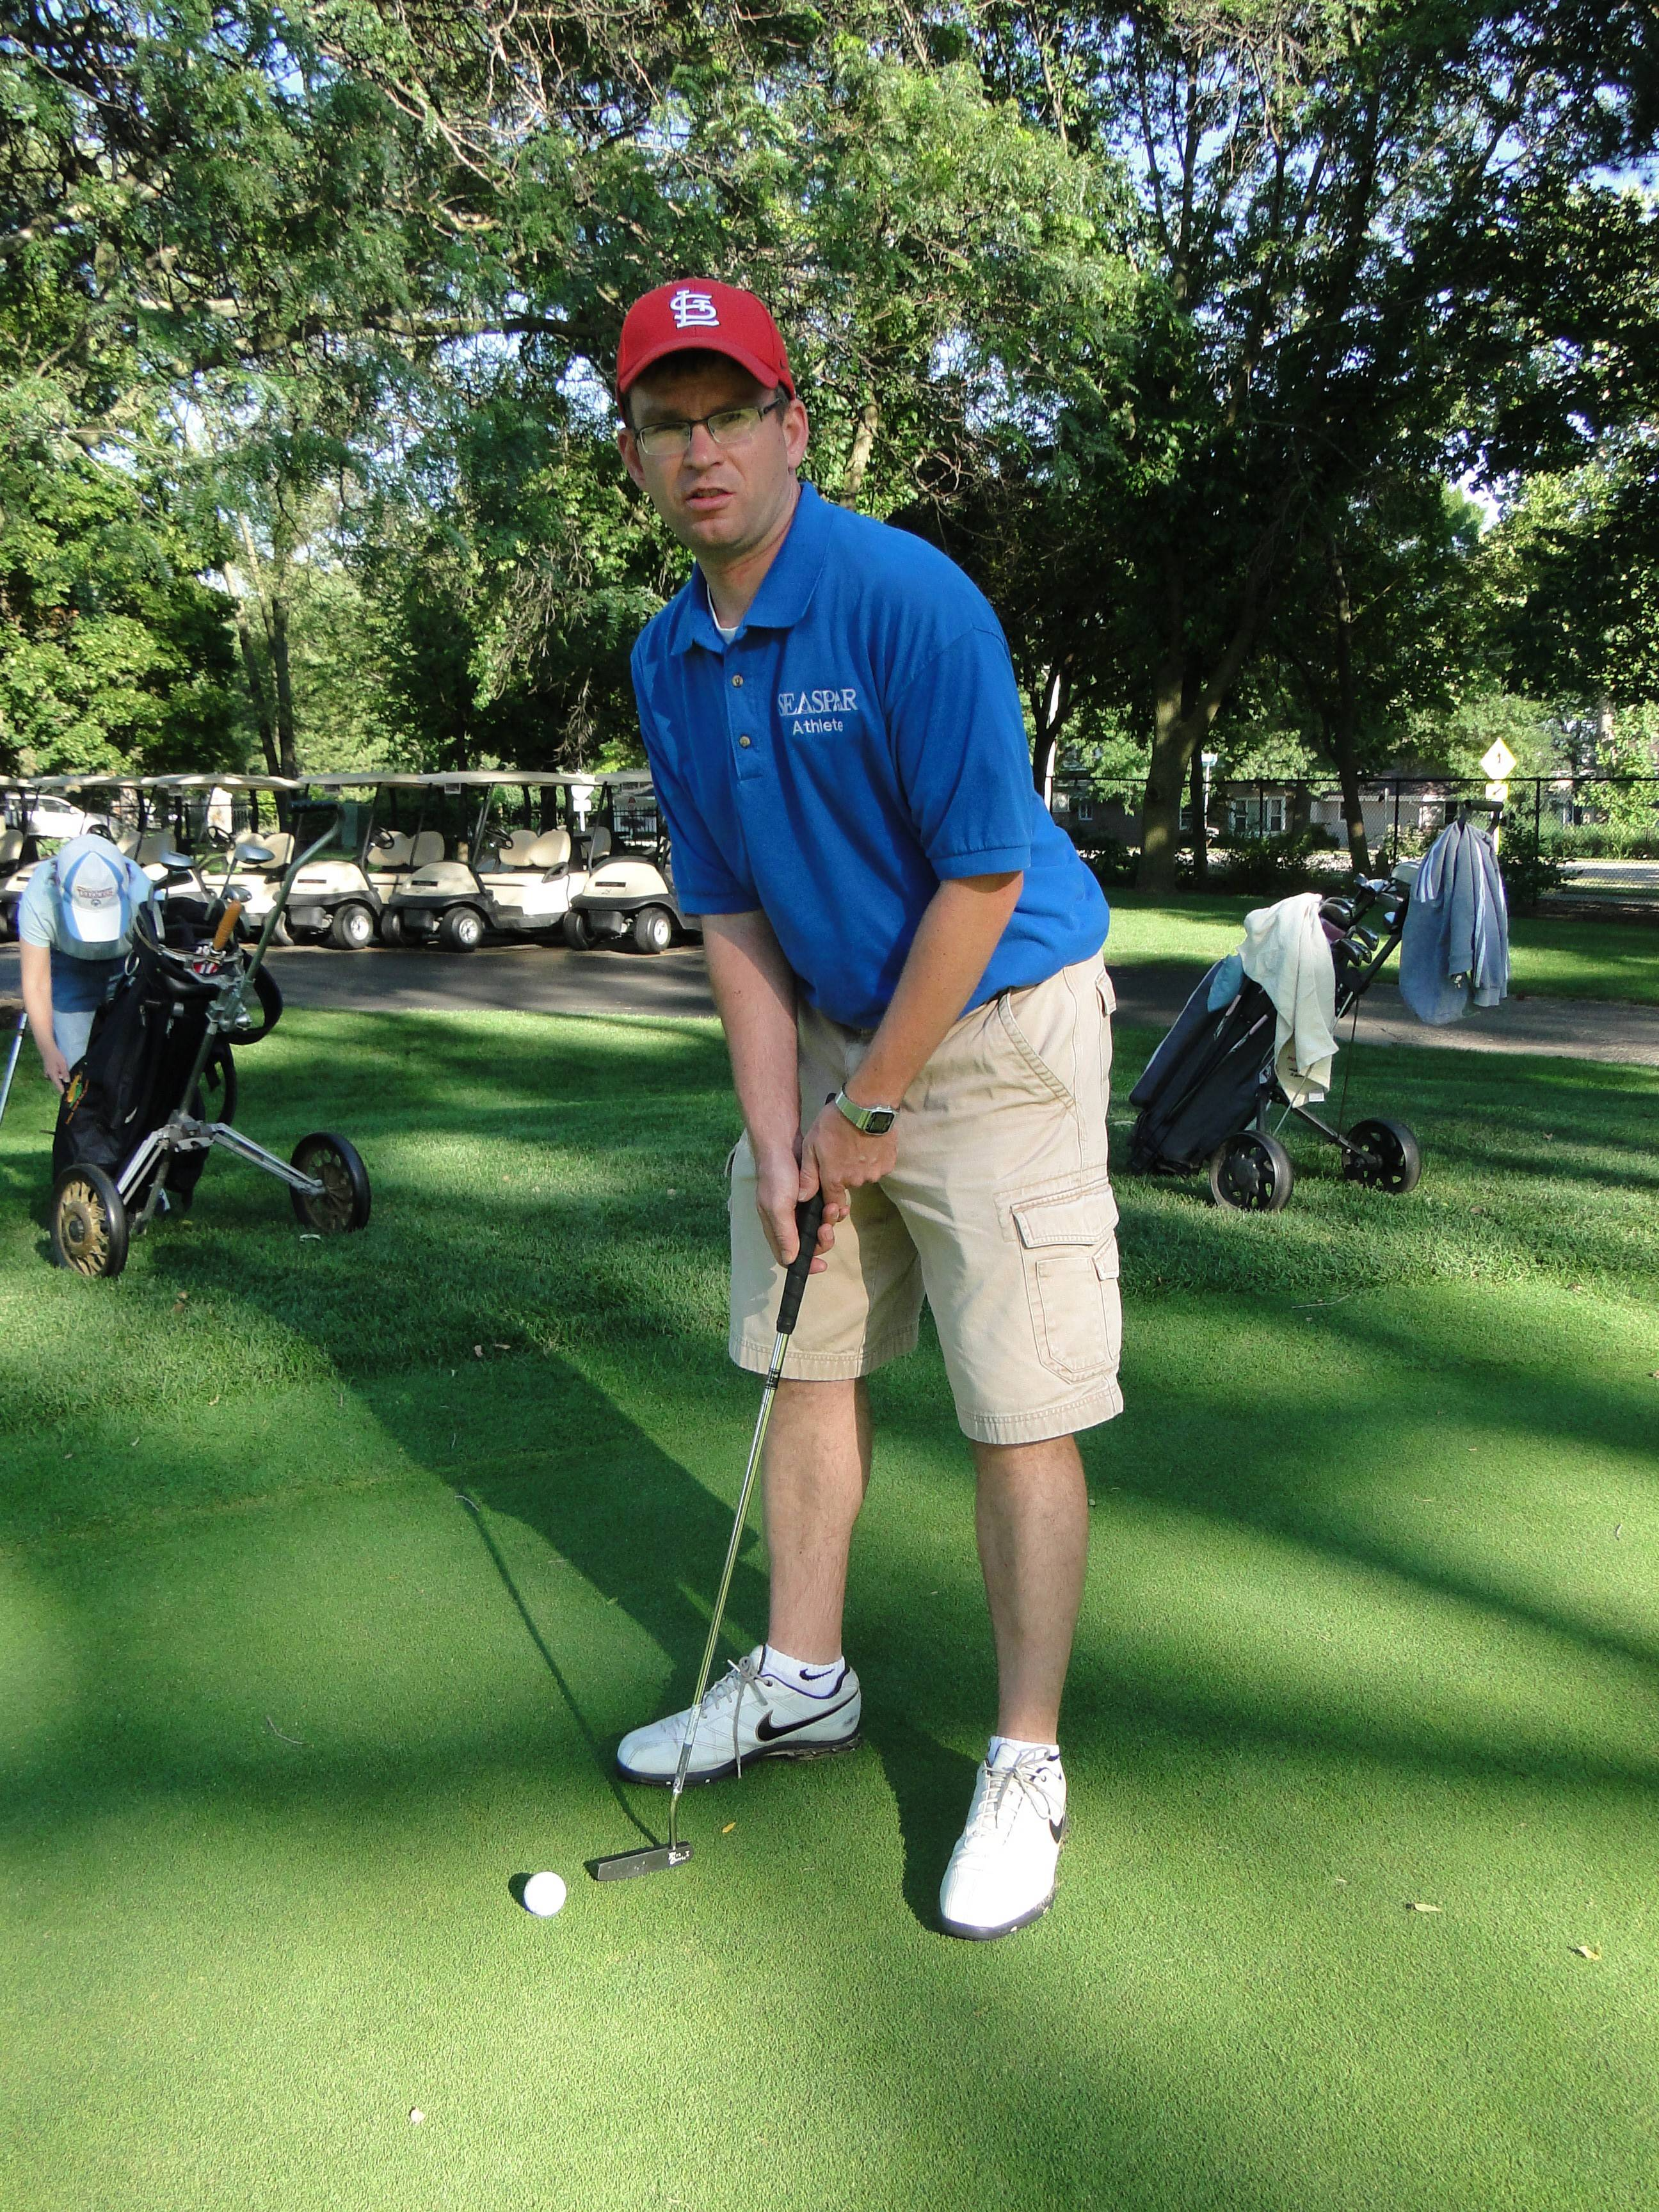 Jeff Osowski of Downers Grove will compete in the golf tournament at the Special Olympics 2014 USA Games next week in New Jersey.